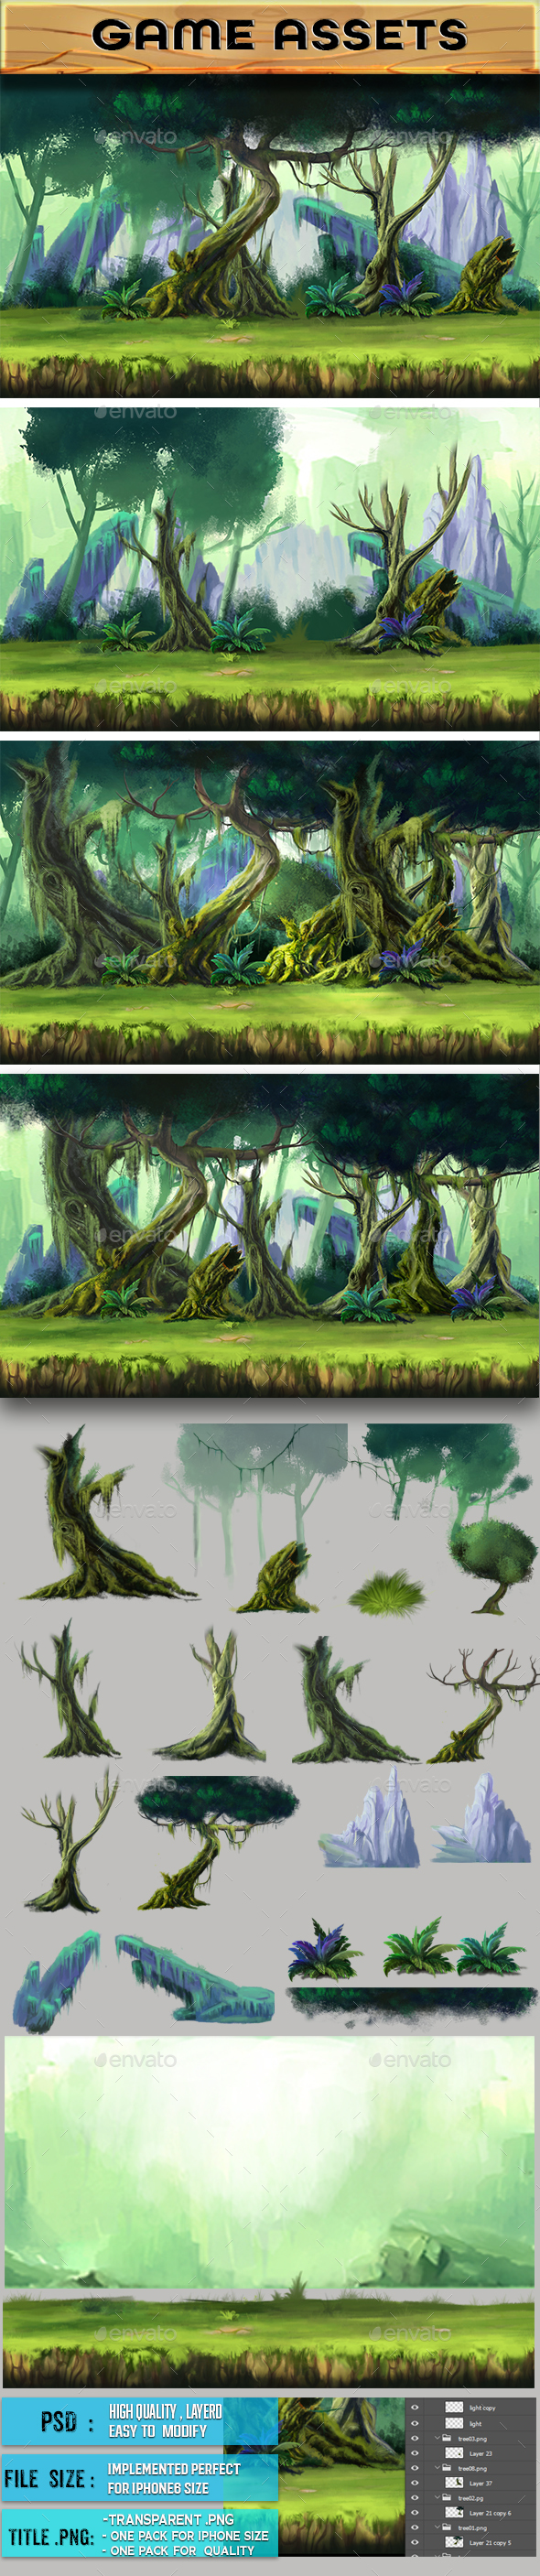 2D Game Assets - Backgrounds Game Assets